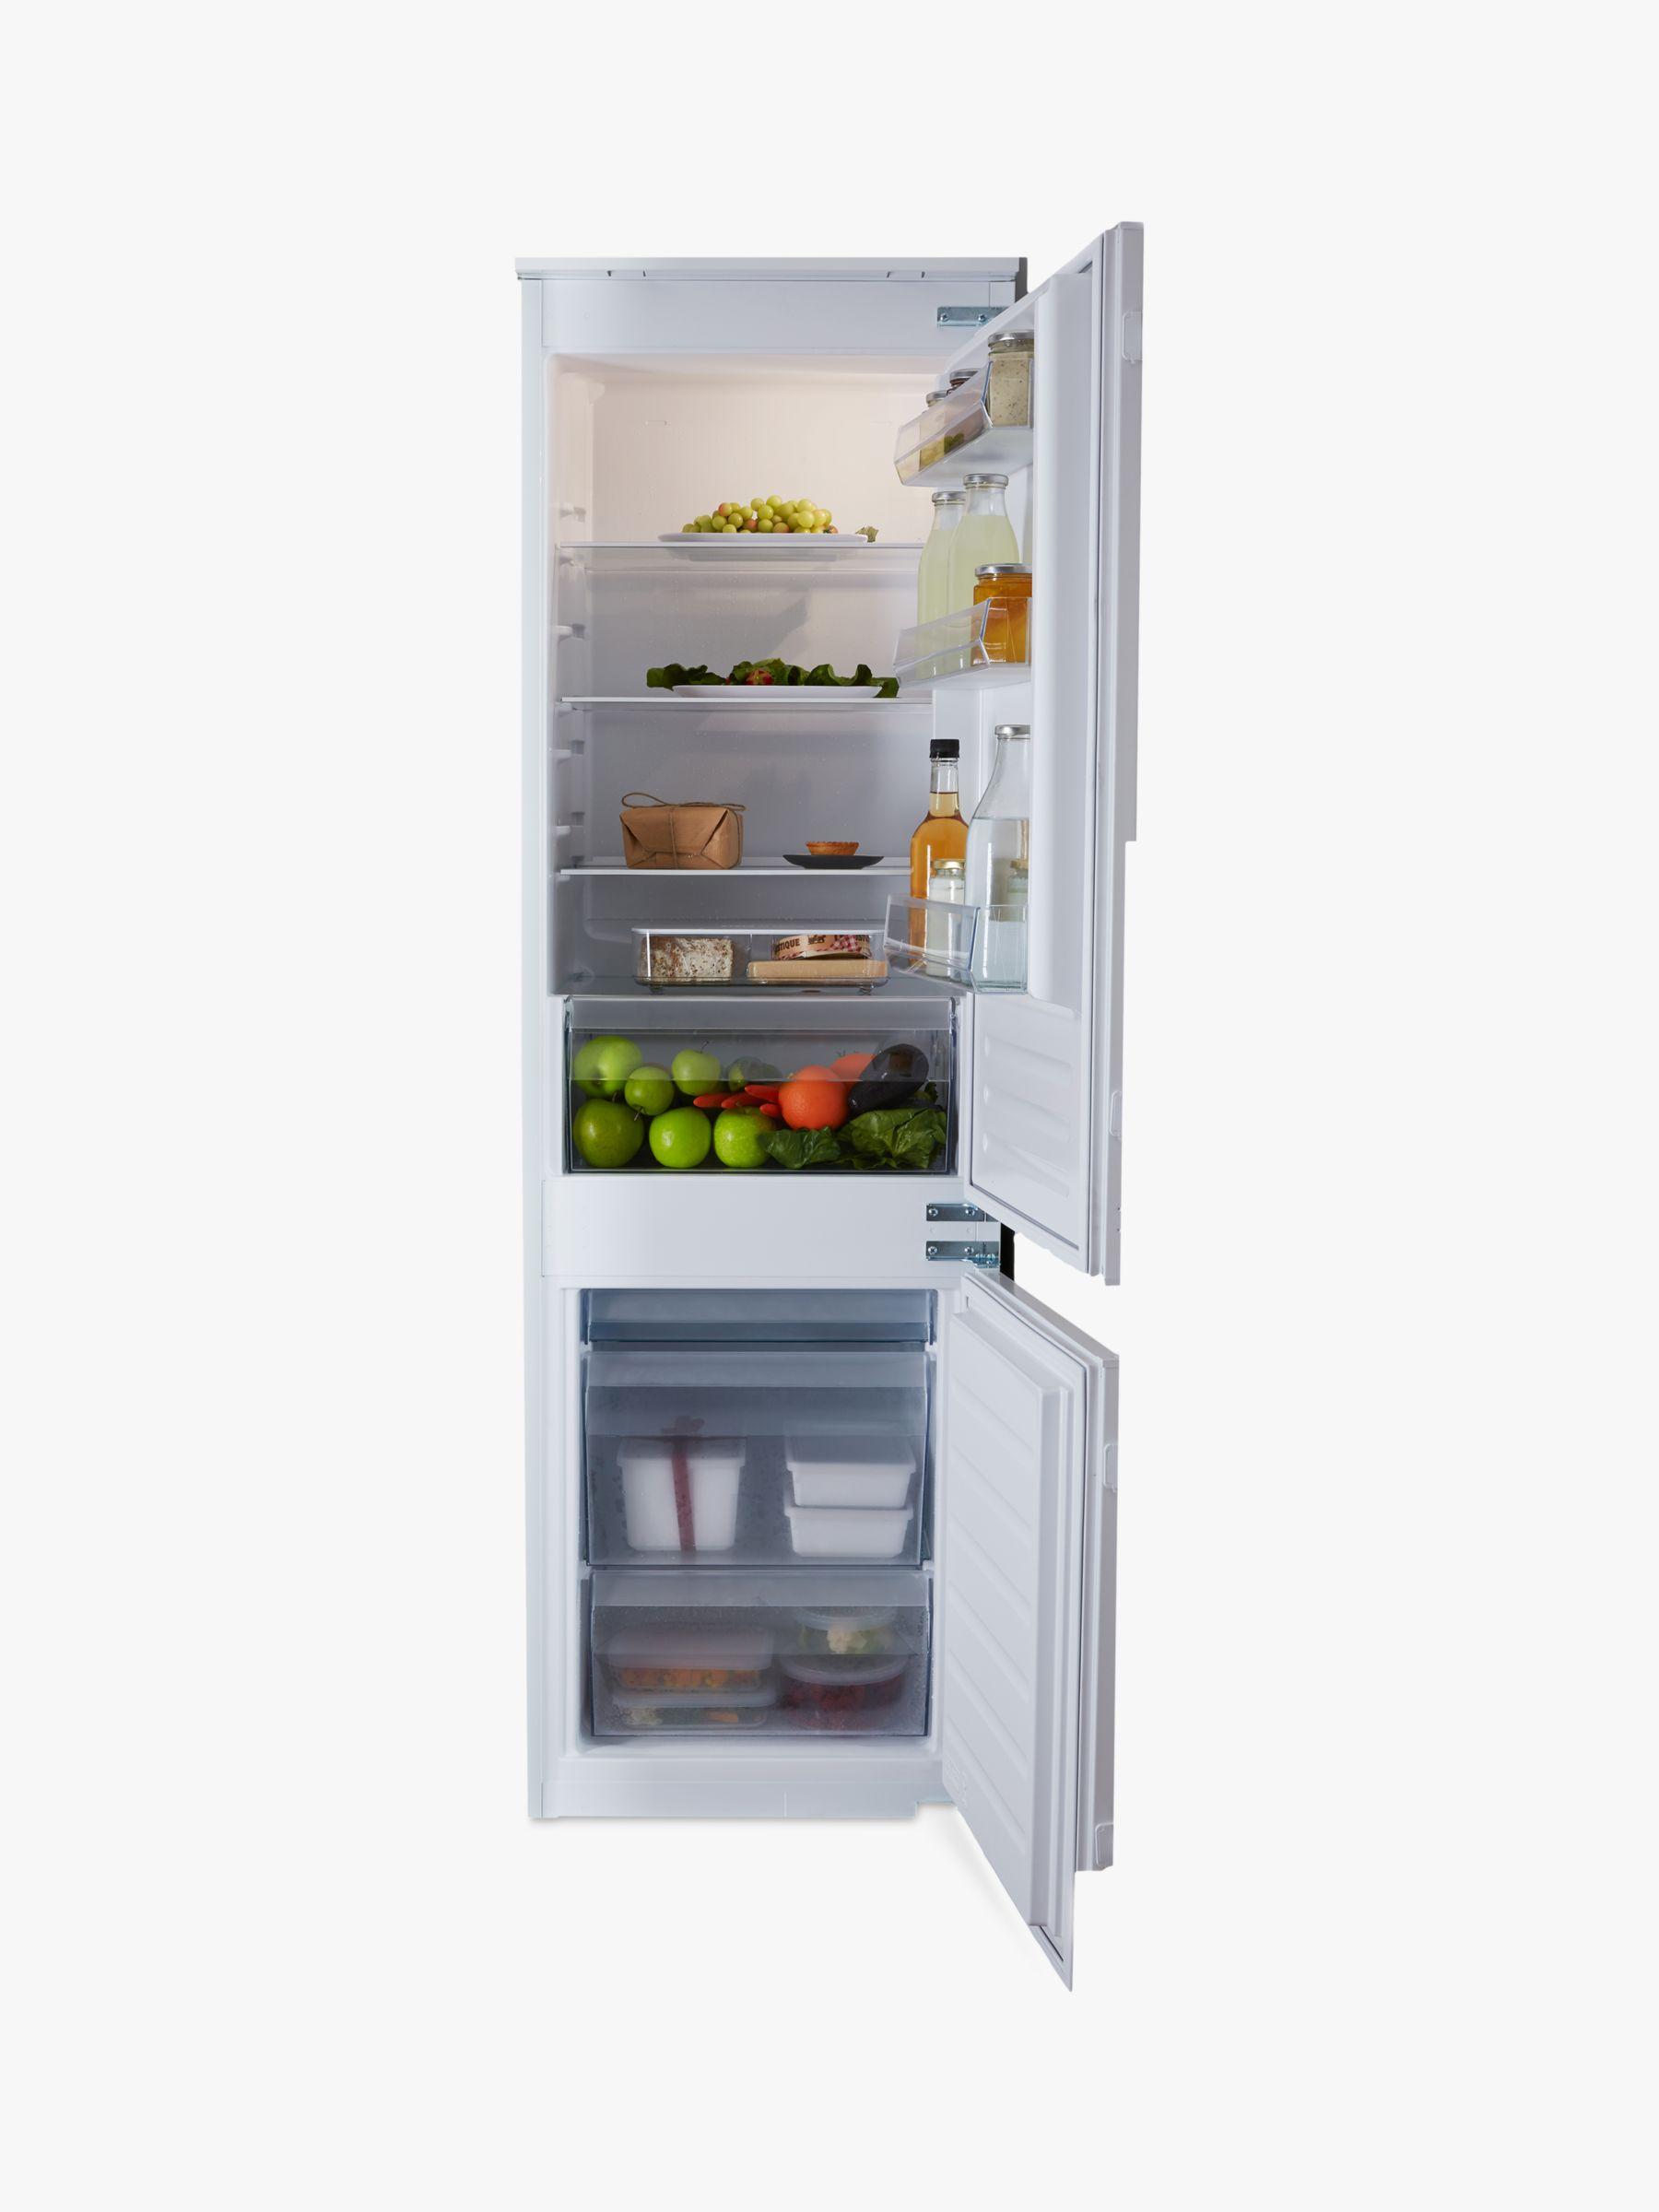 Hotpoint Hotpoint HMCB7030AA.1 Integrated Fridge Freezer, A+ Energy Rating, 54cm Wide, White